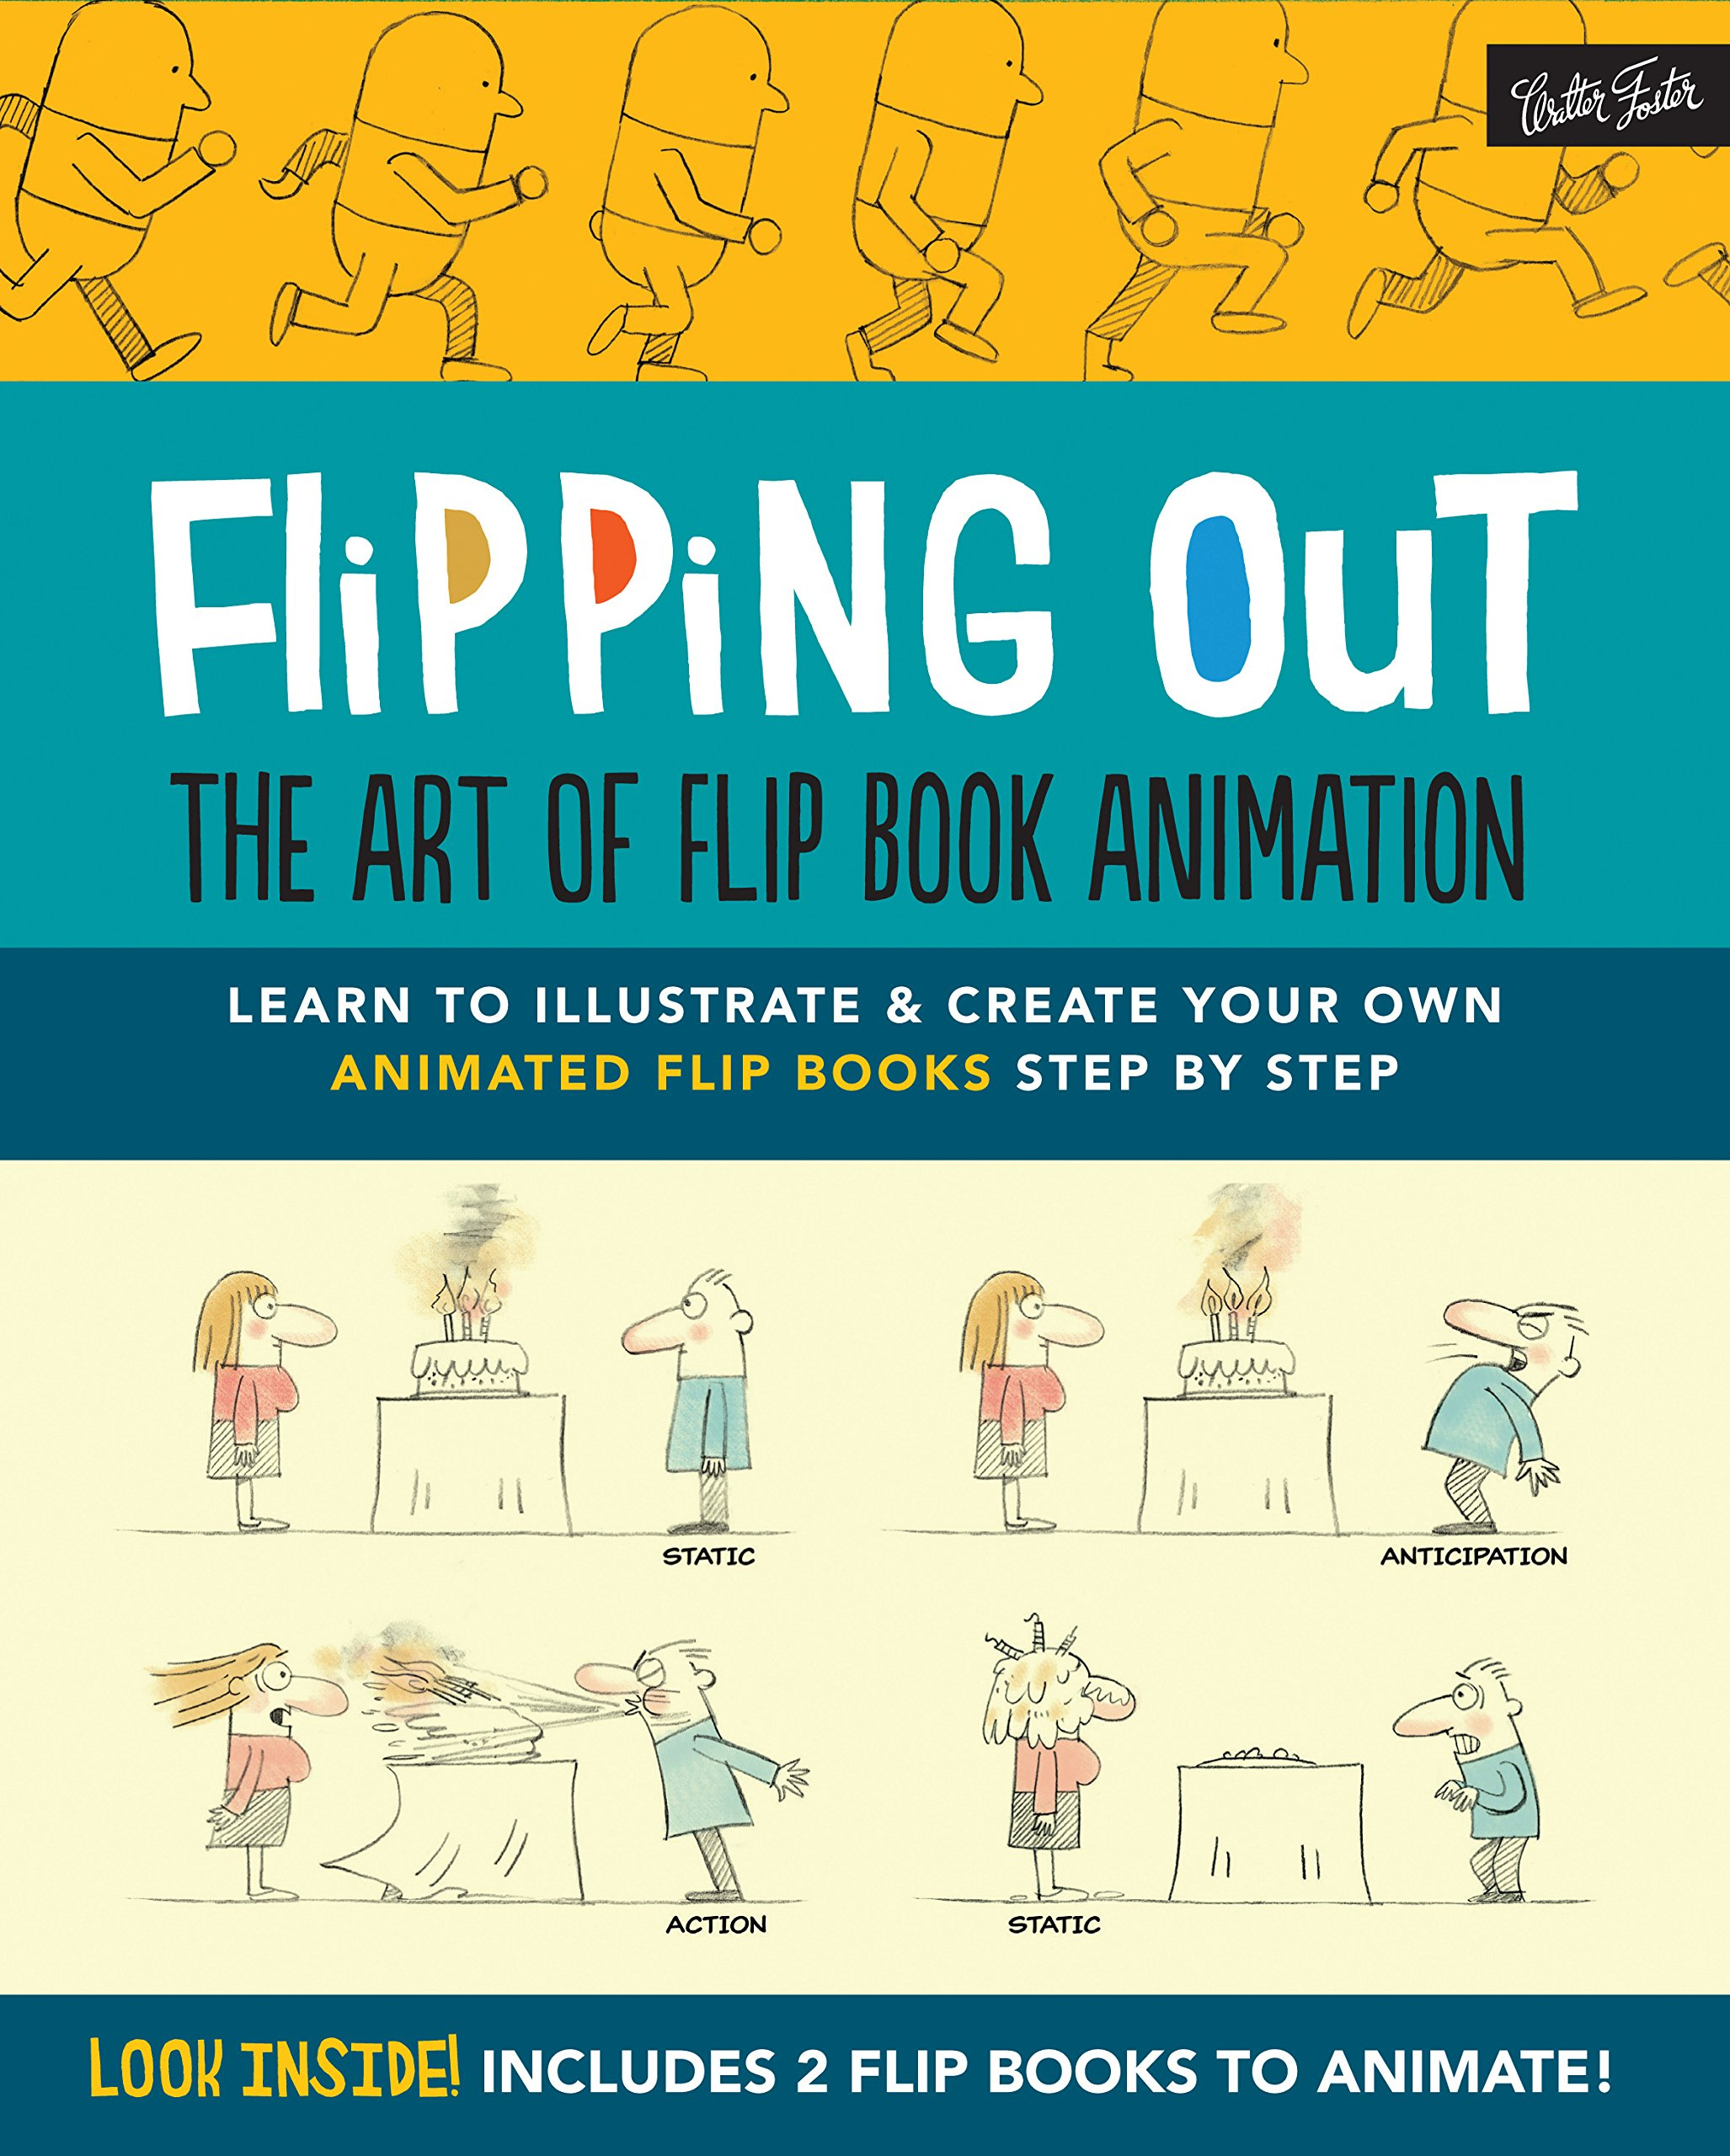 flipping out the art of flip book animation learn to illustrate create your own animated flip books step by step david hurtado 9781633220713